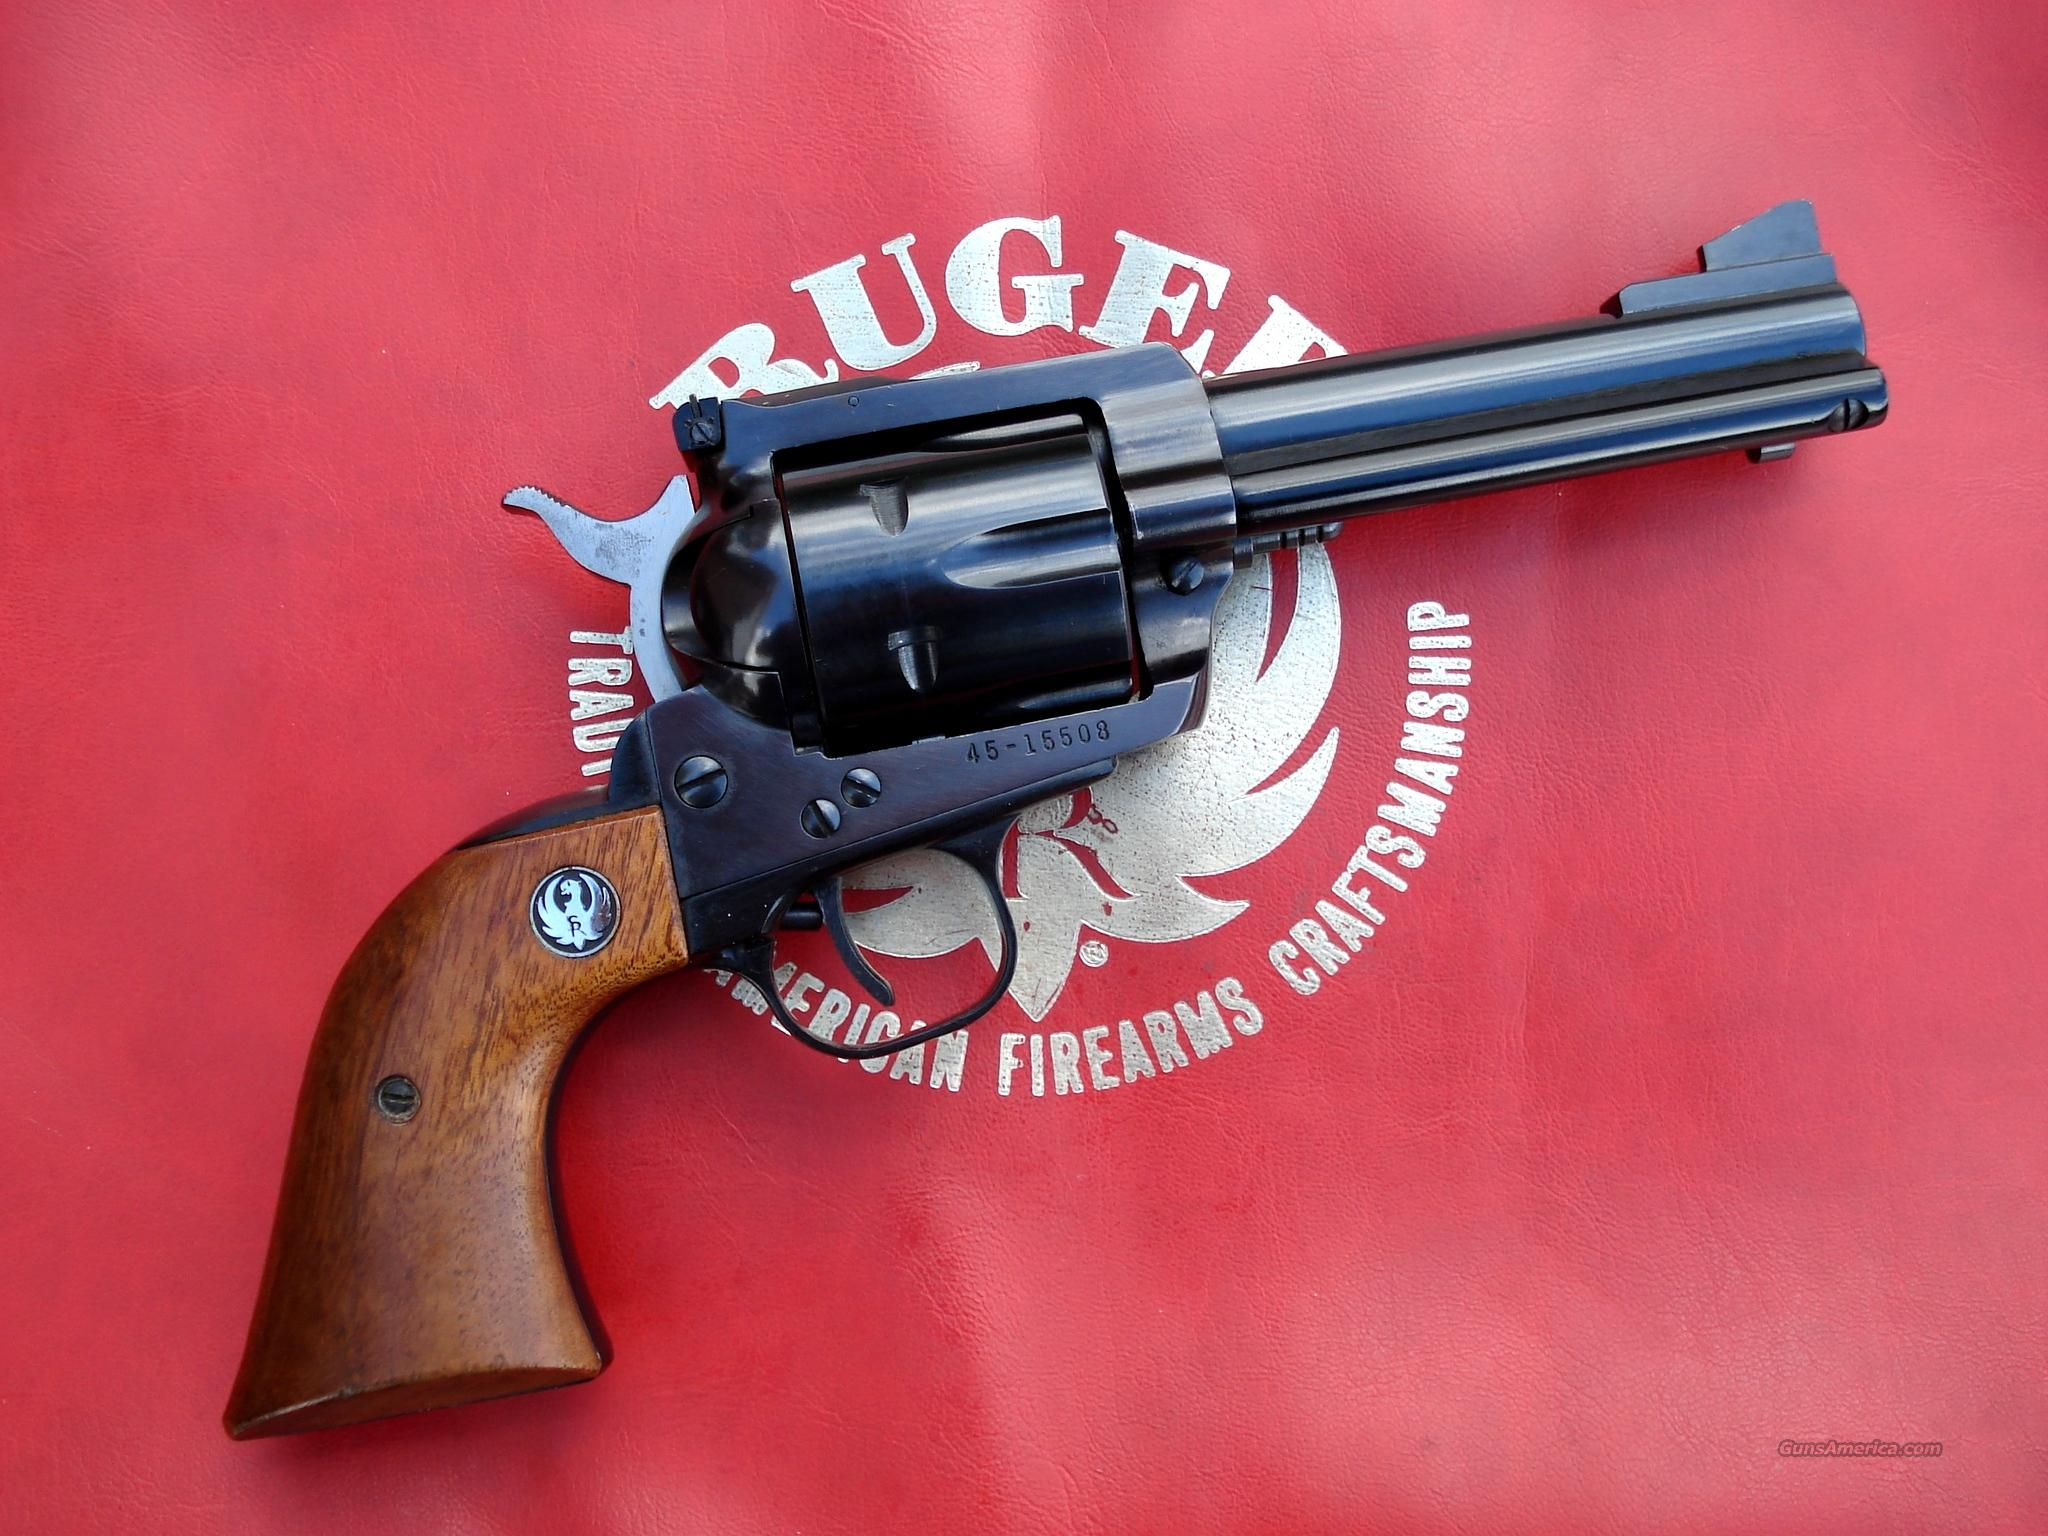 Ruger Blackhawk .45 Old Model 3 Screw 4 5/8 Barrel  Guns > Pistols > Ruger Single Action Revolvers > Blackhawk Type